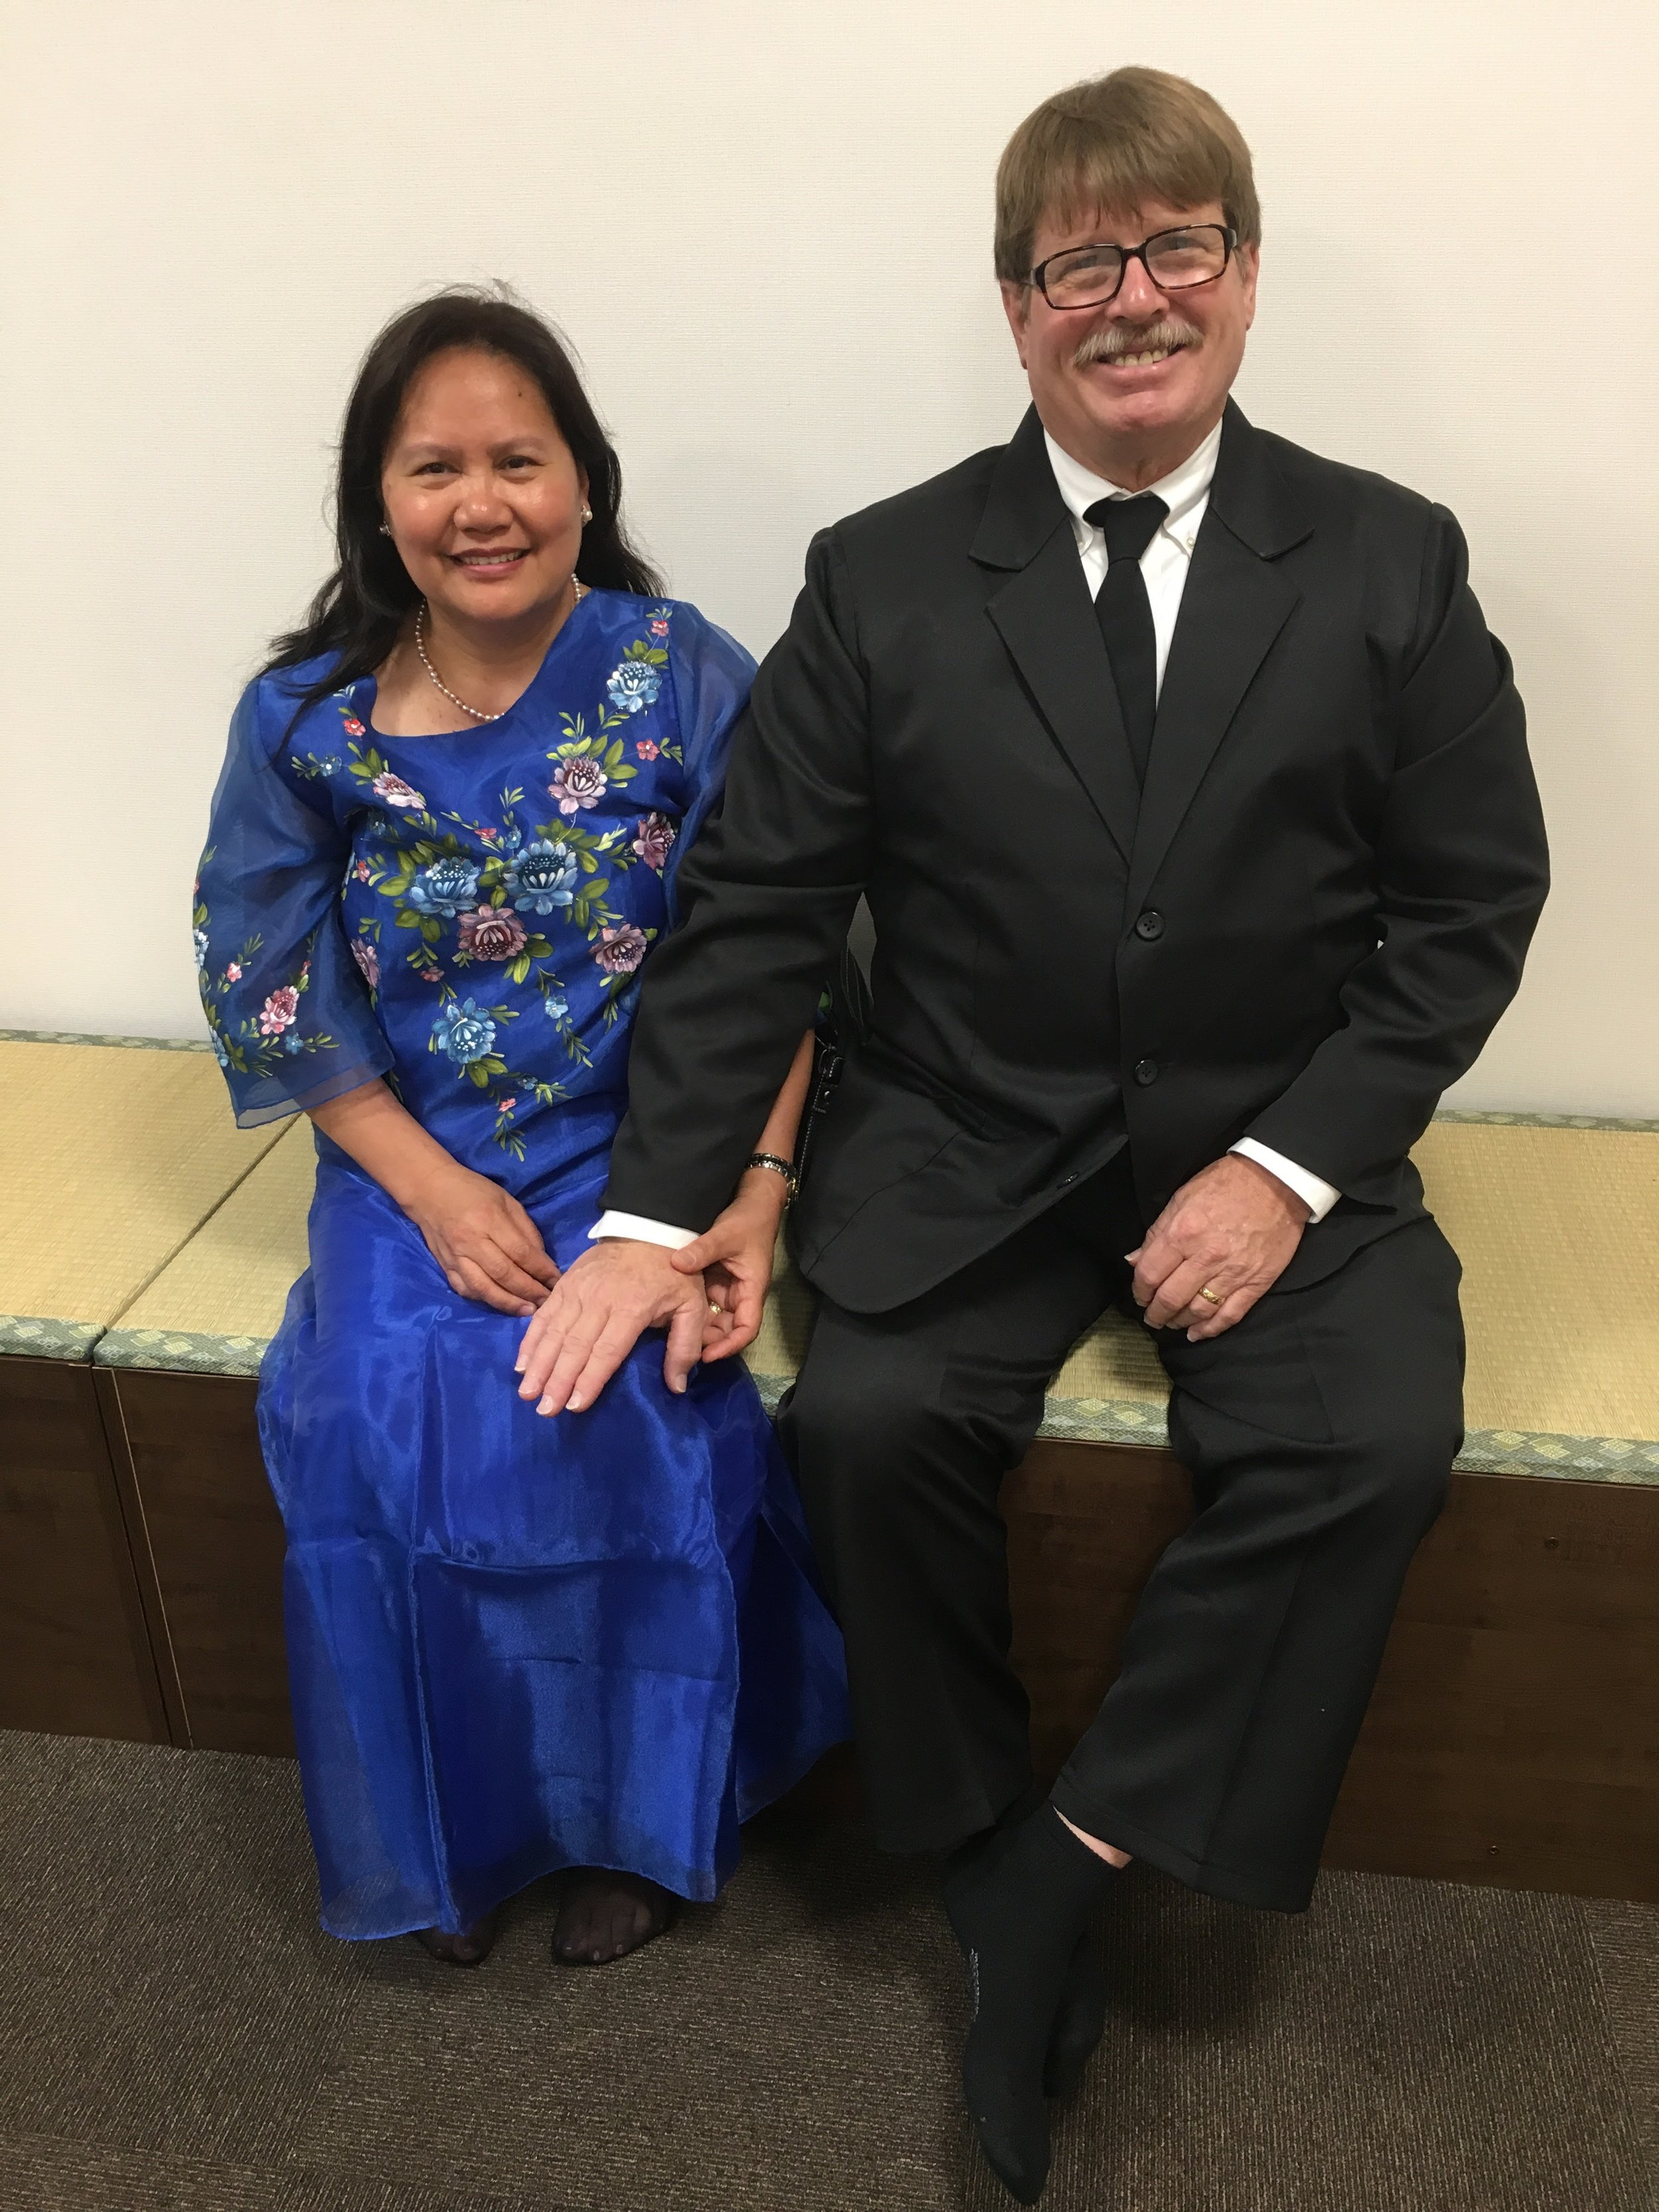 My parents at my brothers wedding- my mom is wearing the traditional formalwear of the Philippines.